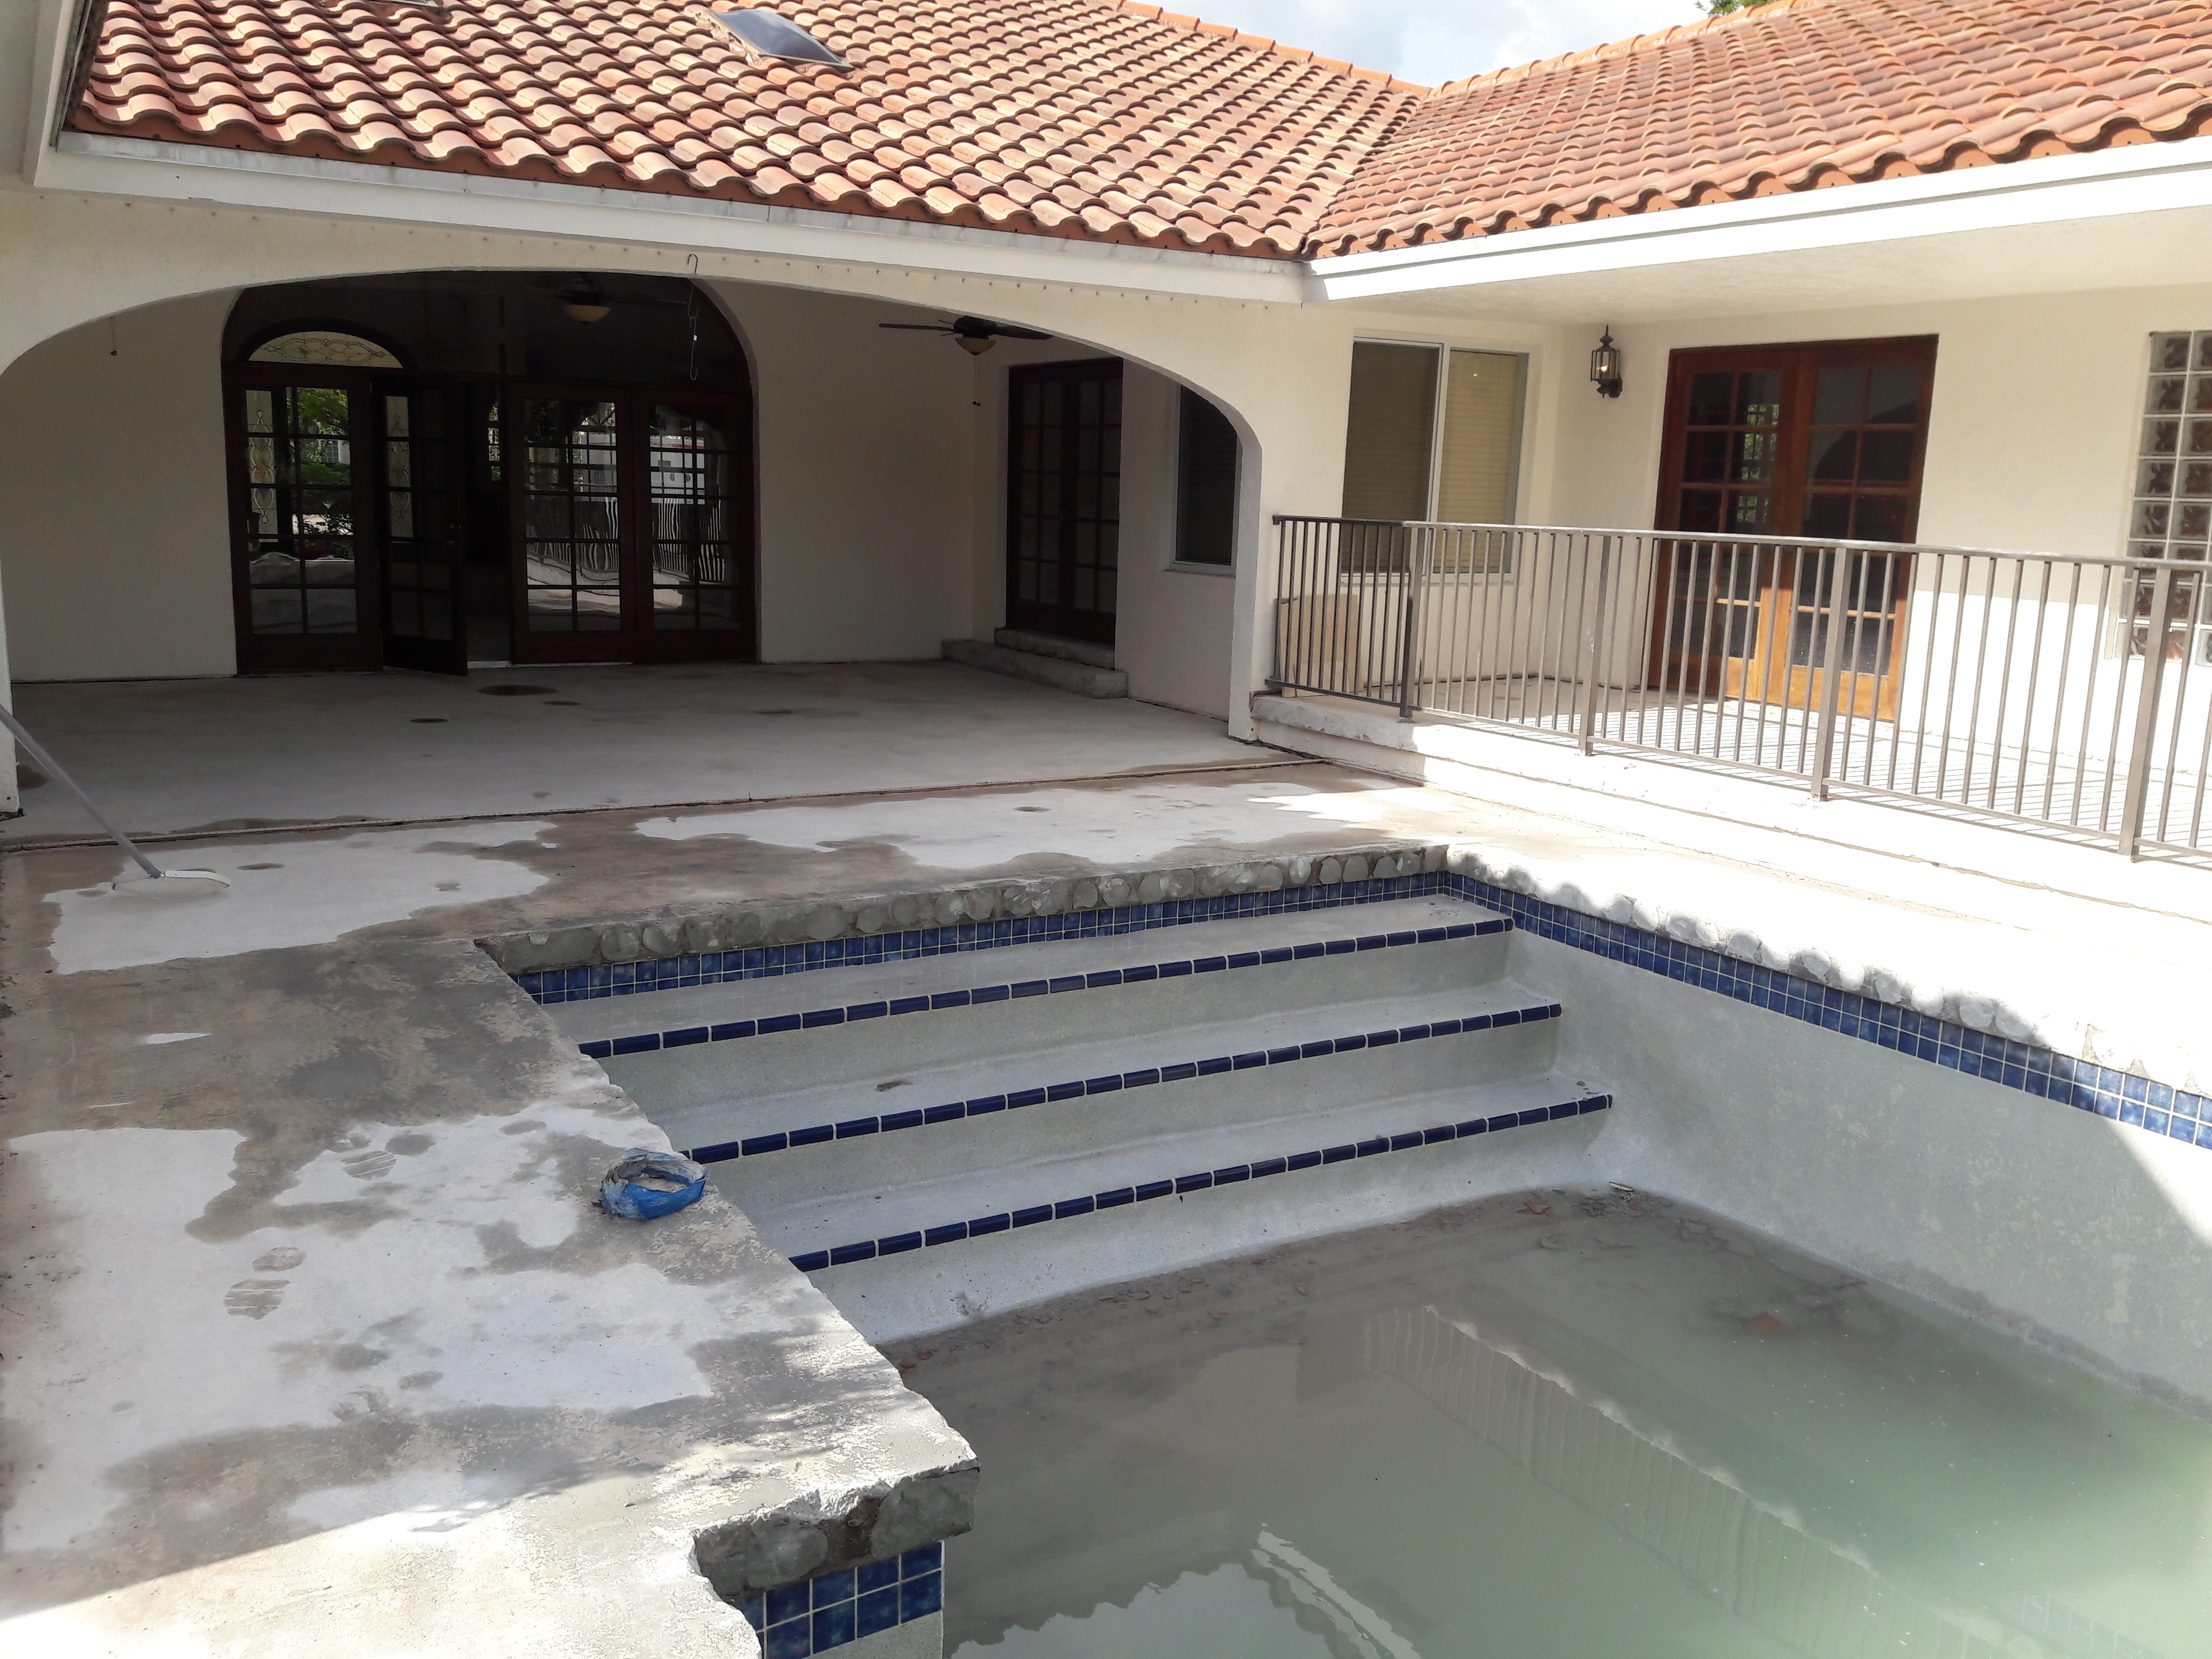 Process for Spanish Tile Removal in South Florida